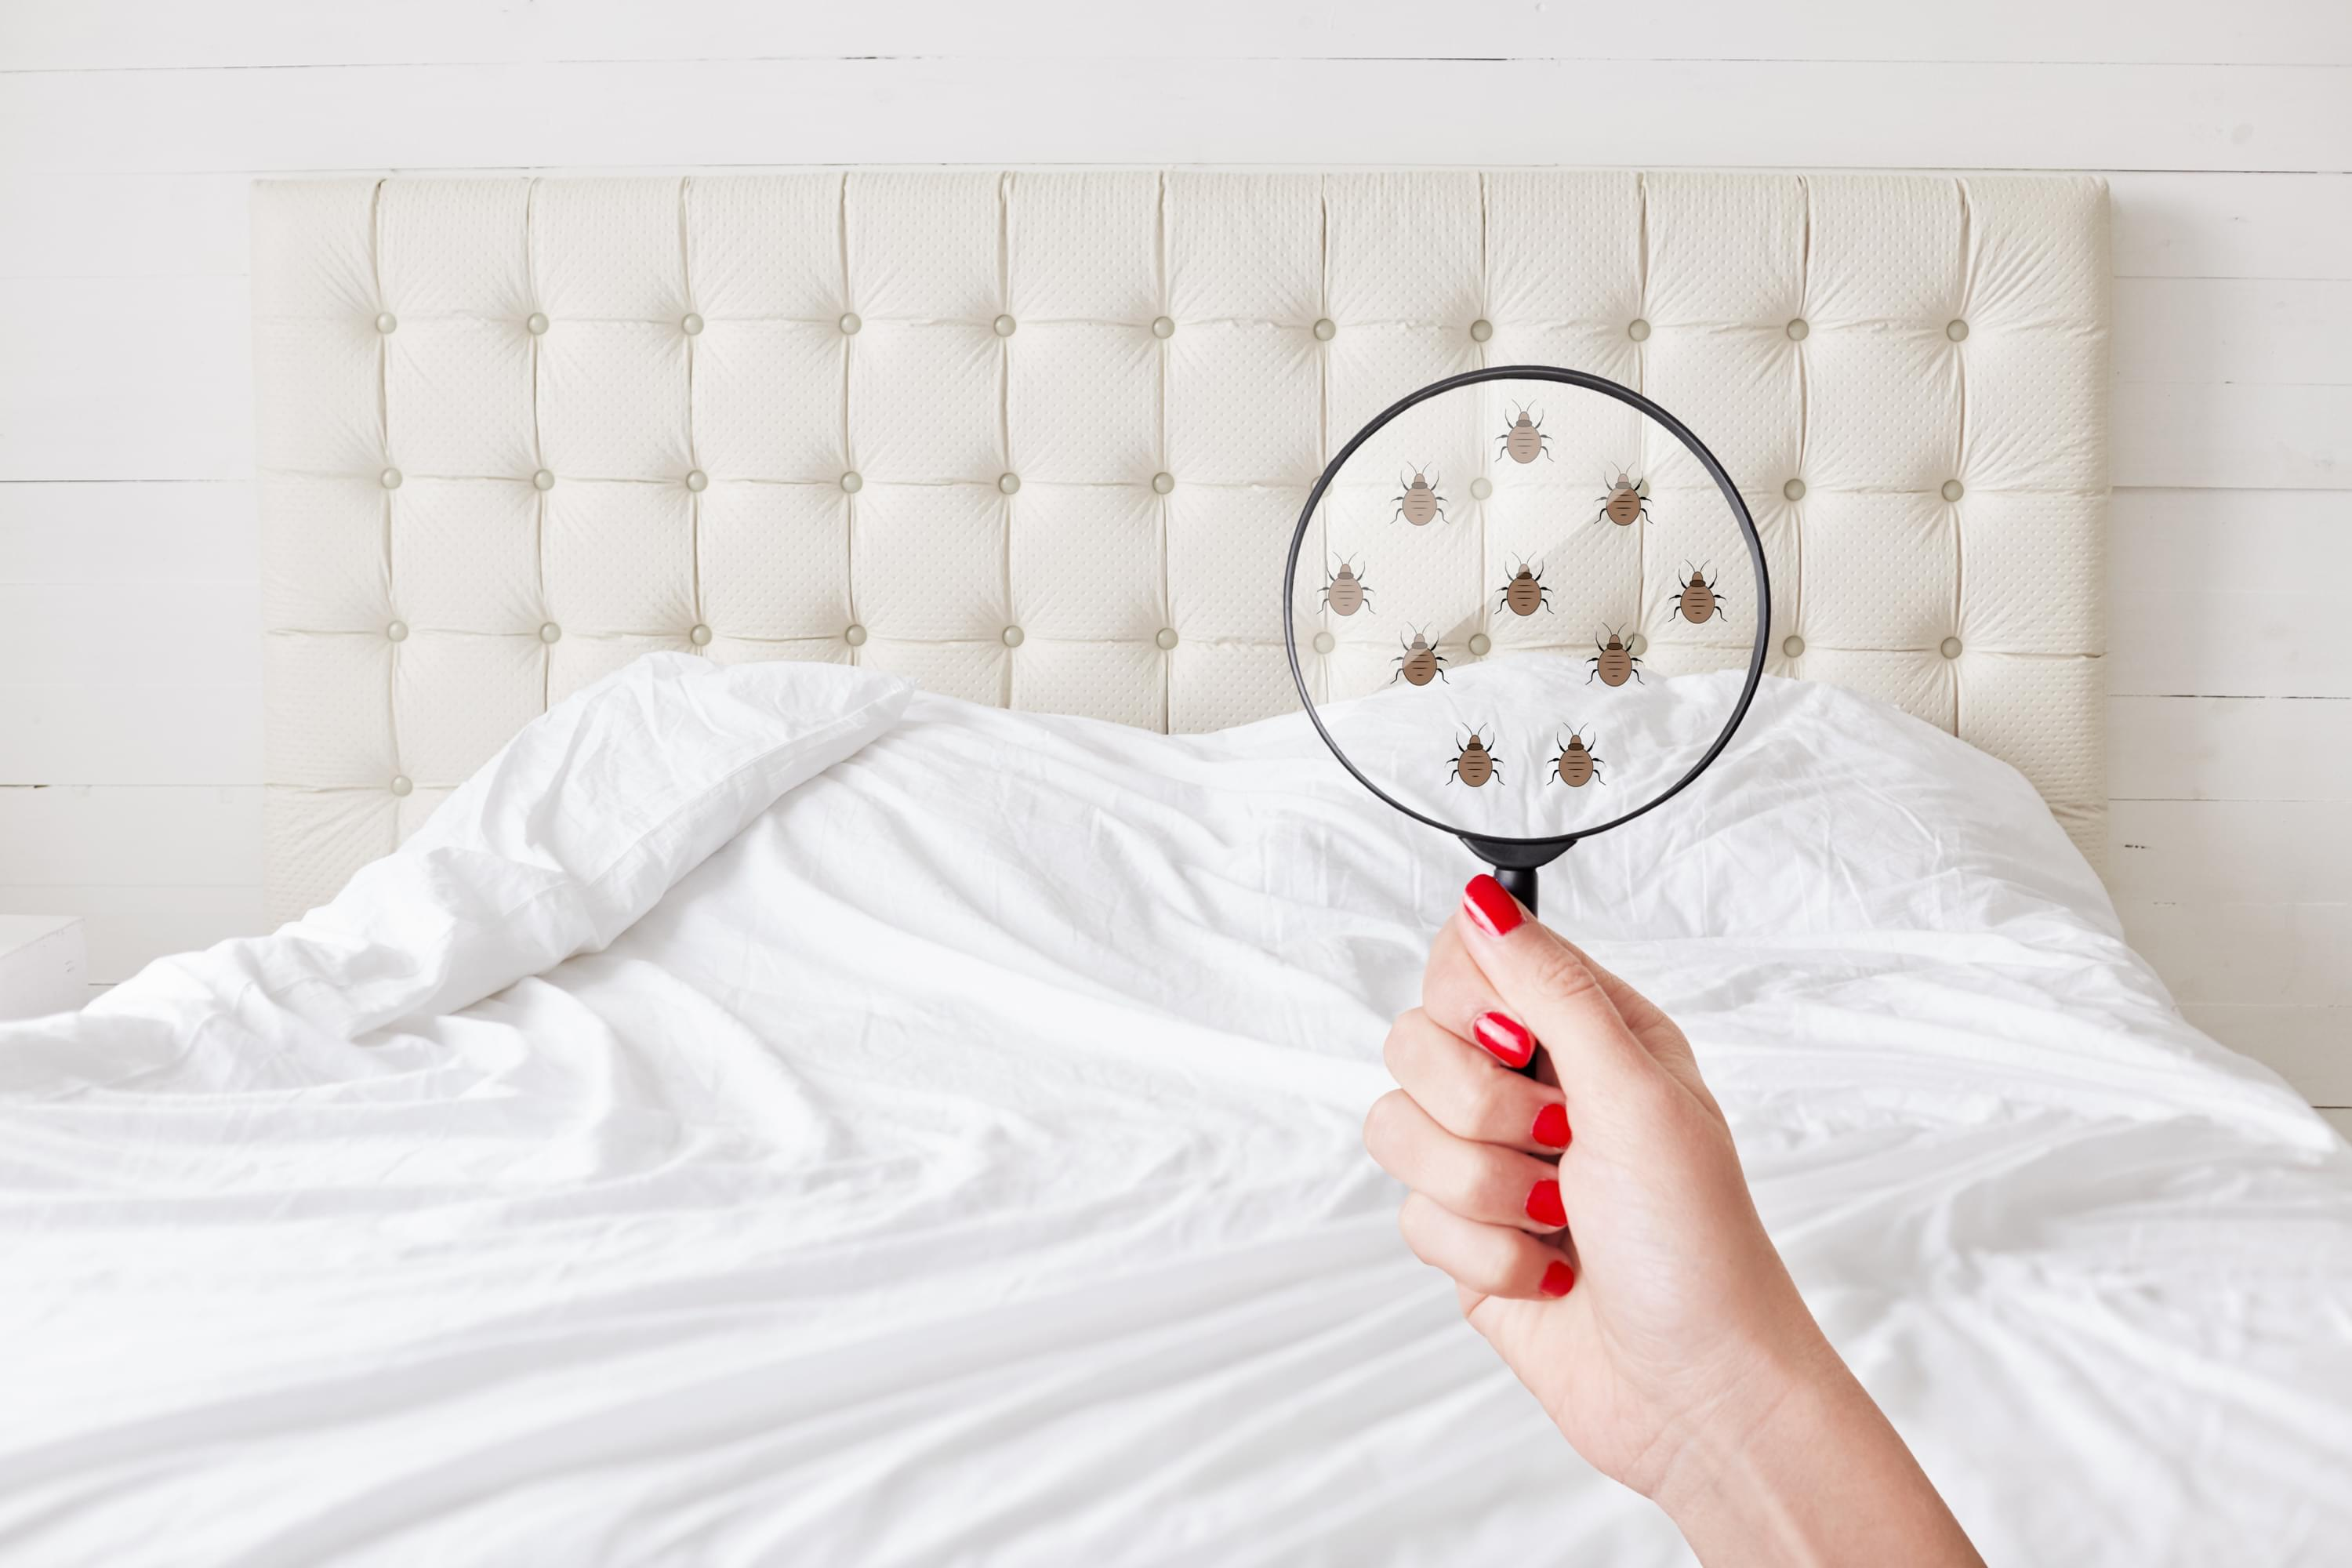 How to Avoid Bed Bugs and Protect Your Home